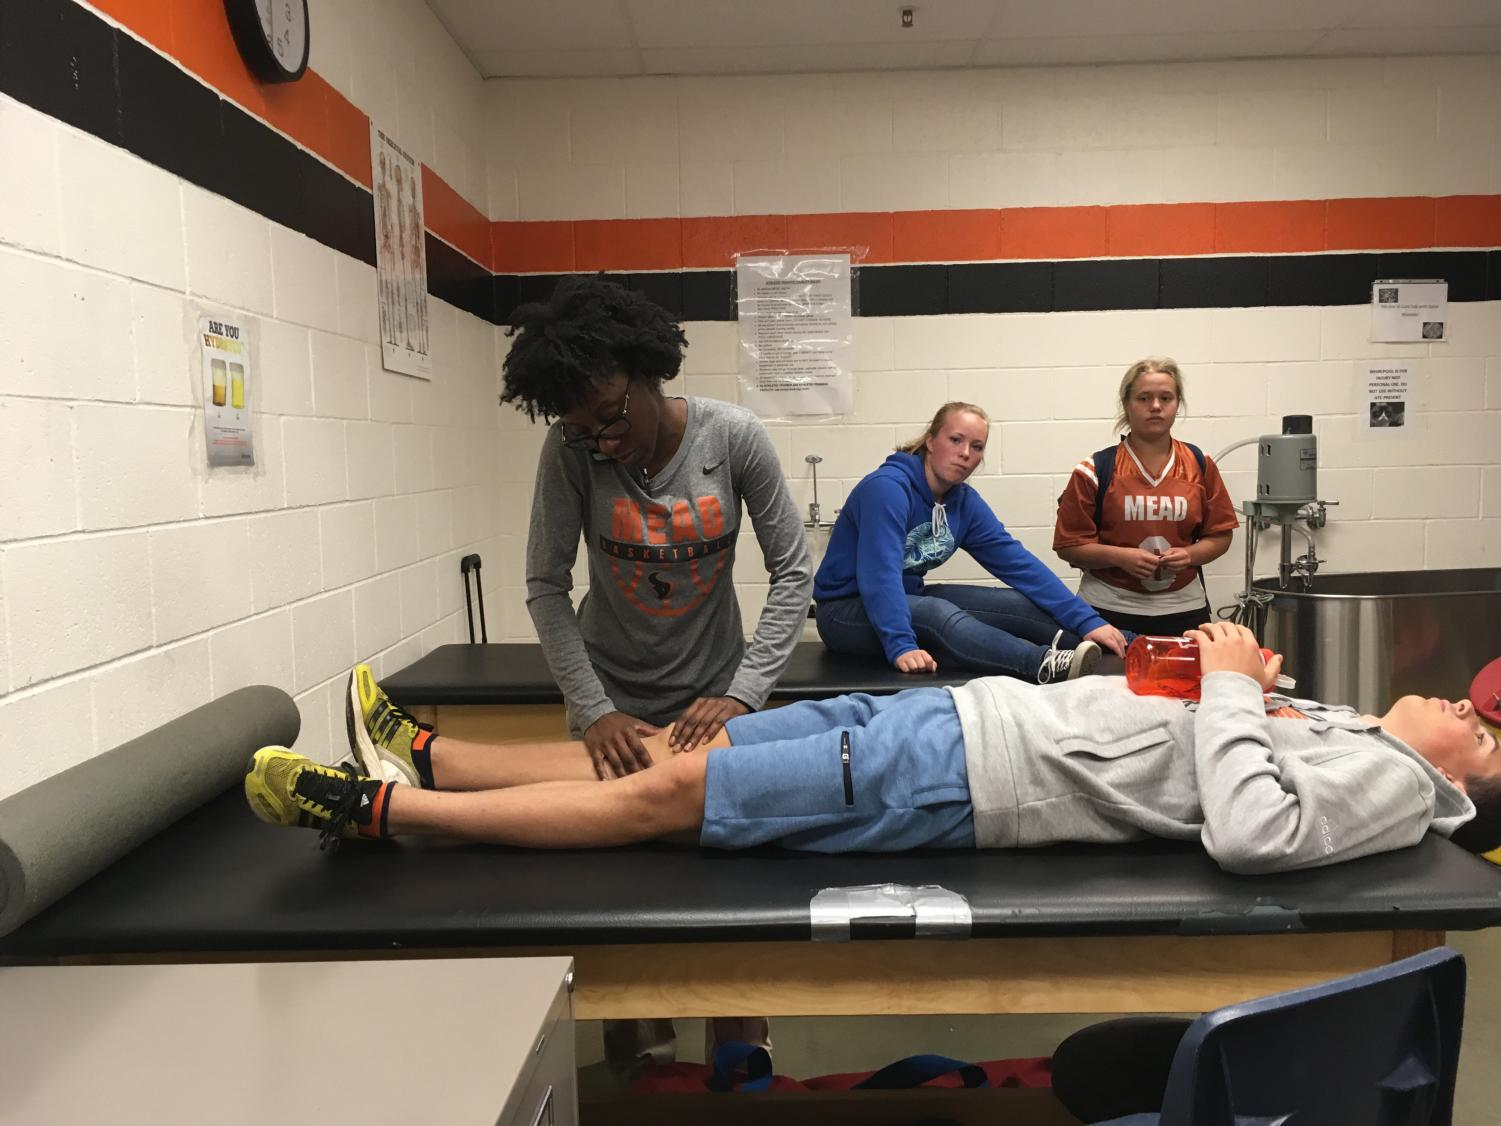 A student undergoes a physical evaluation.